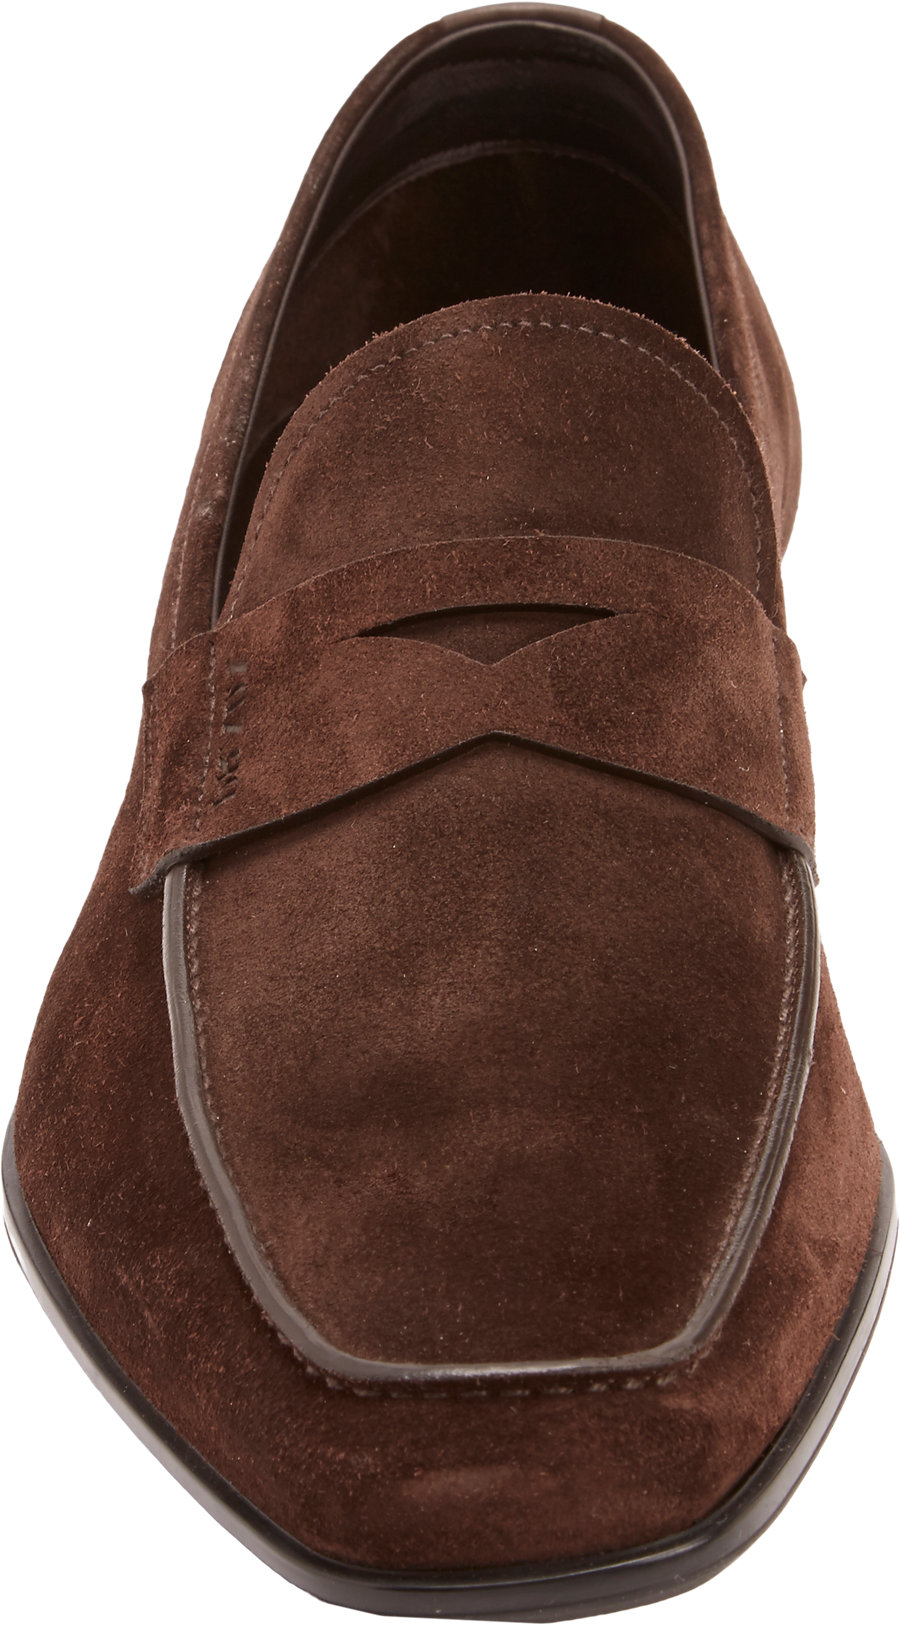 40fe1db5189 ... coupon code for prada suede penny loafers in brown for men lyst f7dde  39ee4